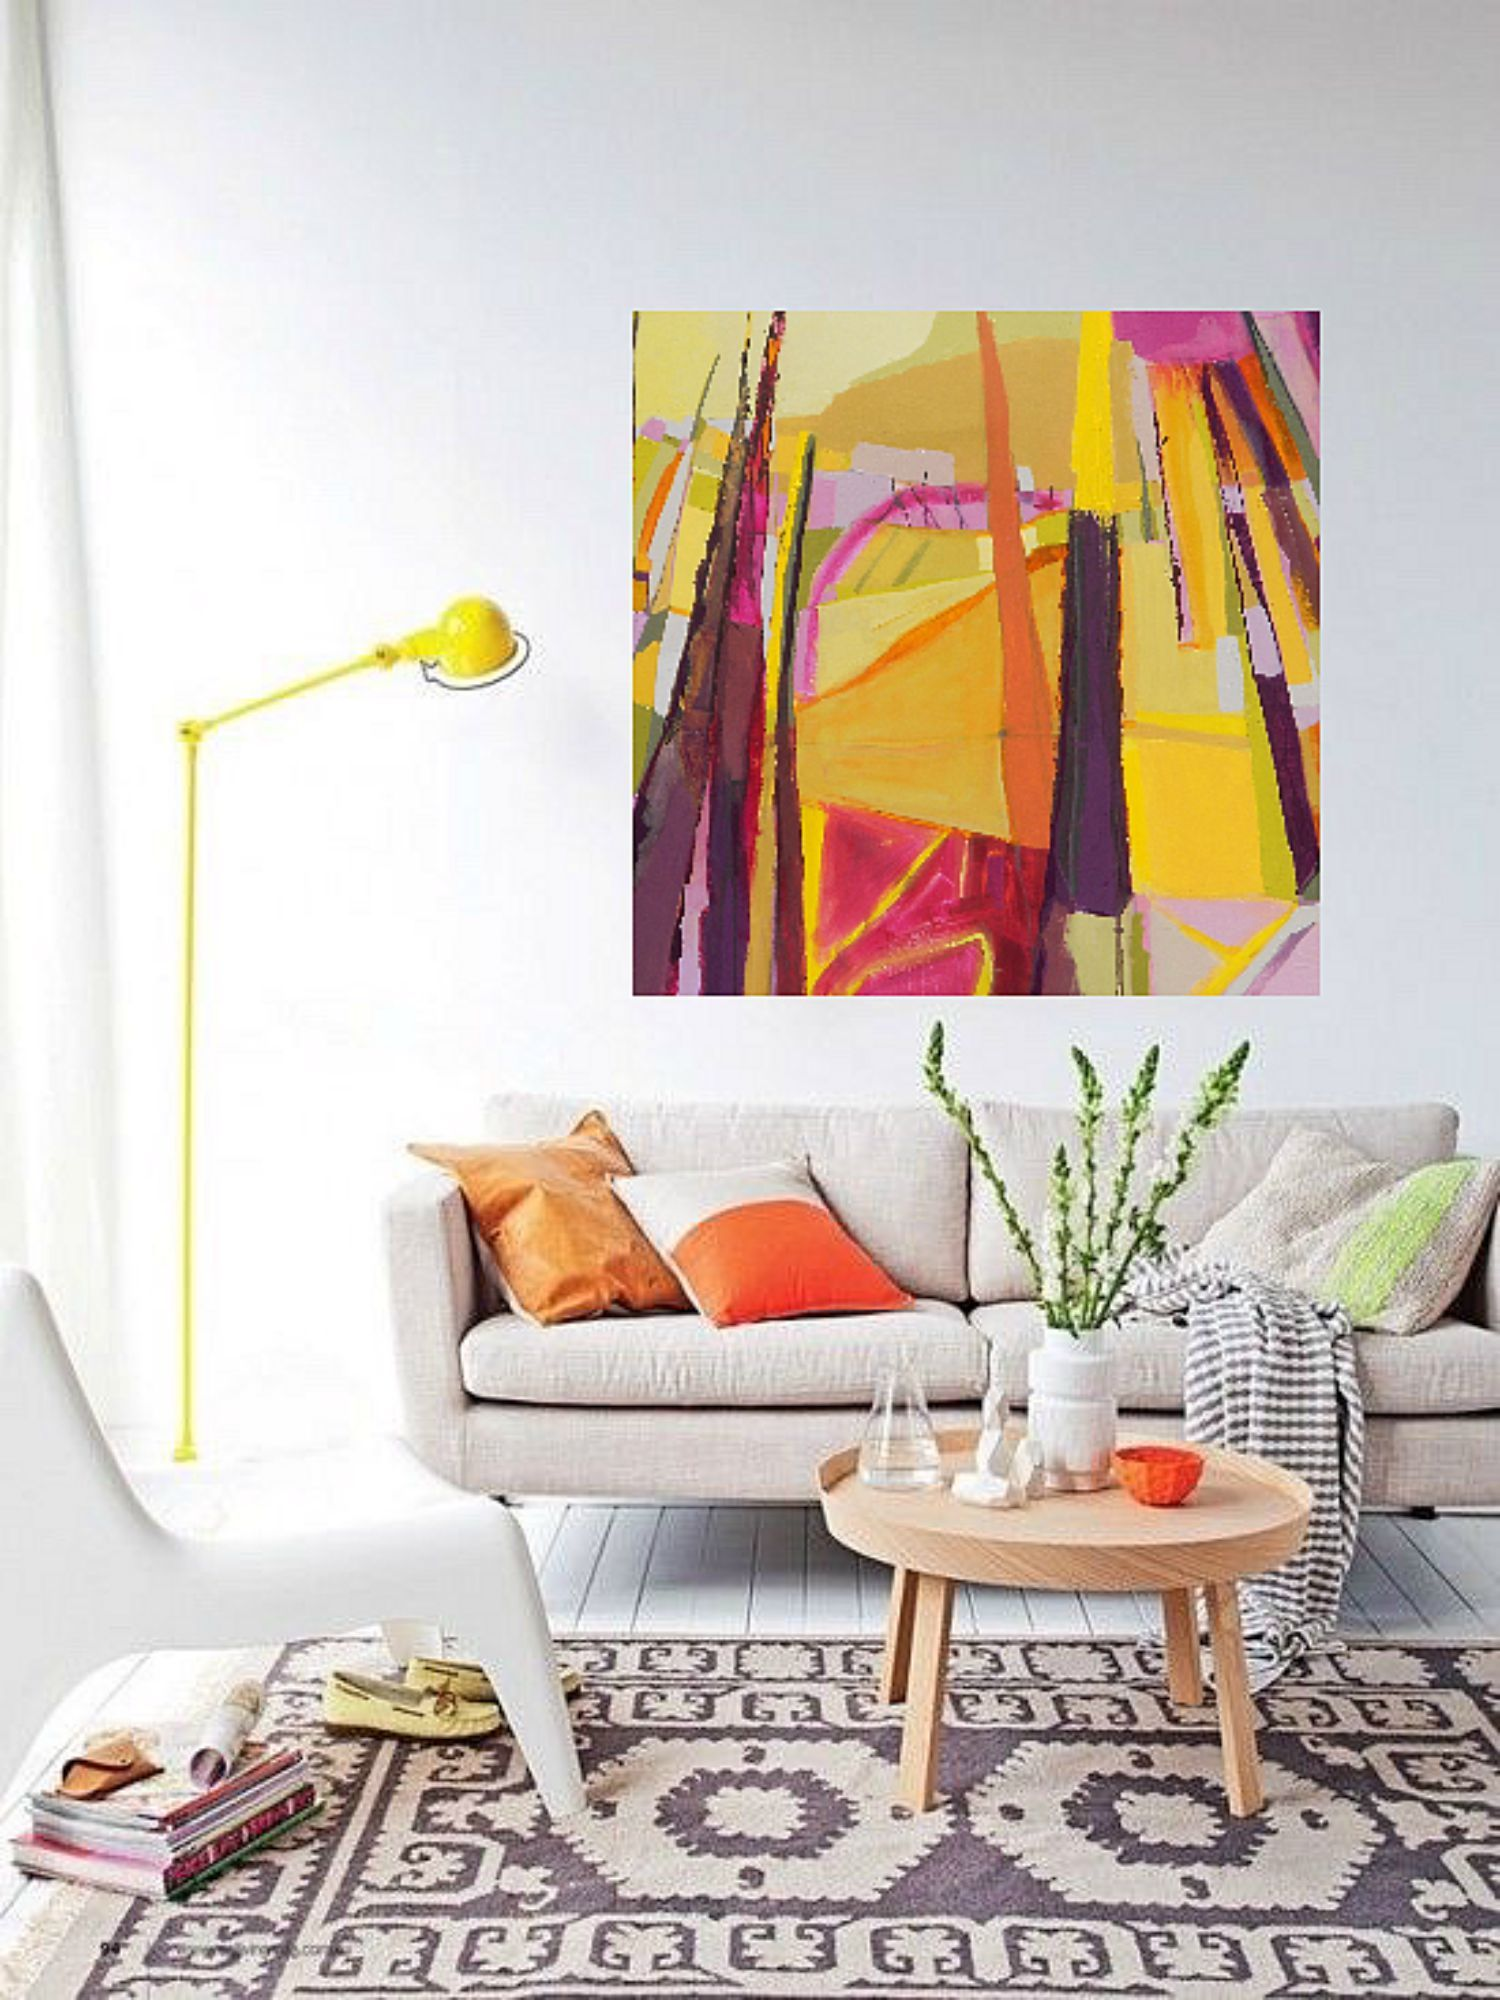 Abstract Room Designs: Bold Colorful Abstract Art Landscape Painting By Danielle